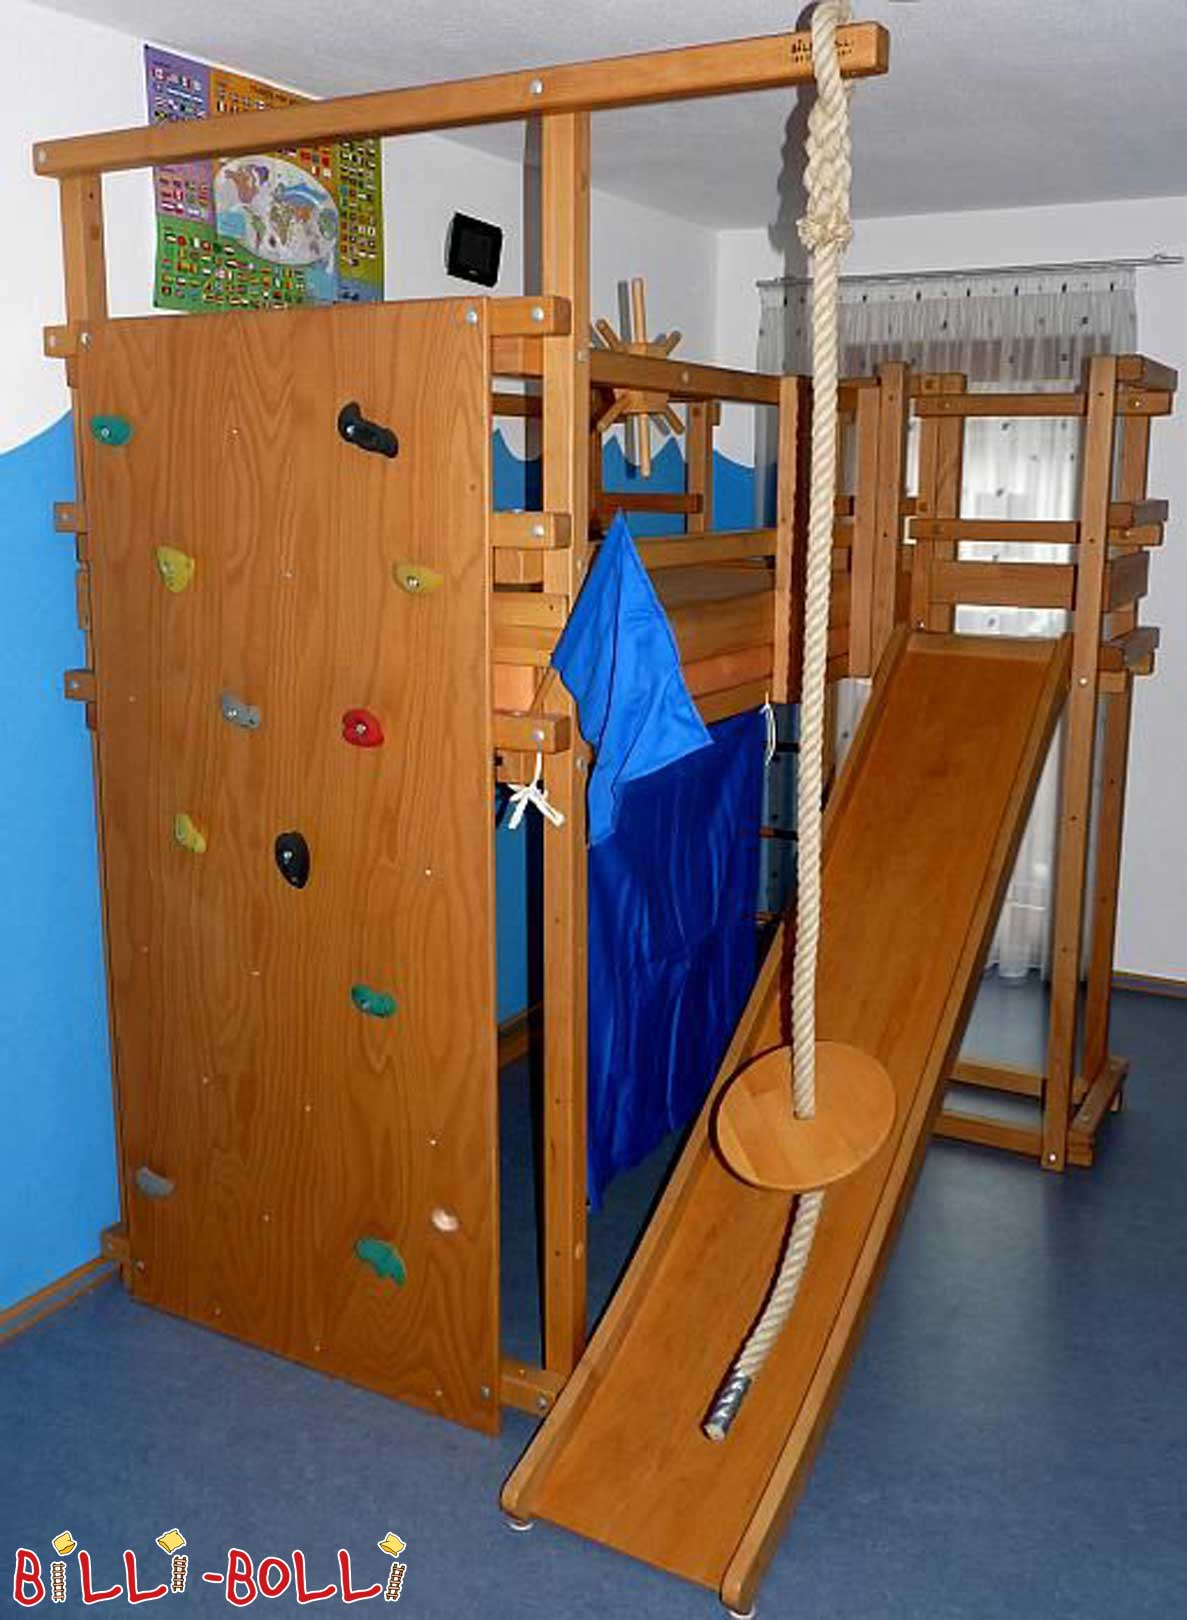 Secondhand page 94 billi bolli kids furniture for Second hand bunk beds